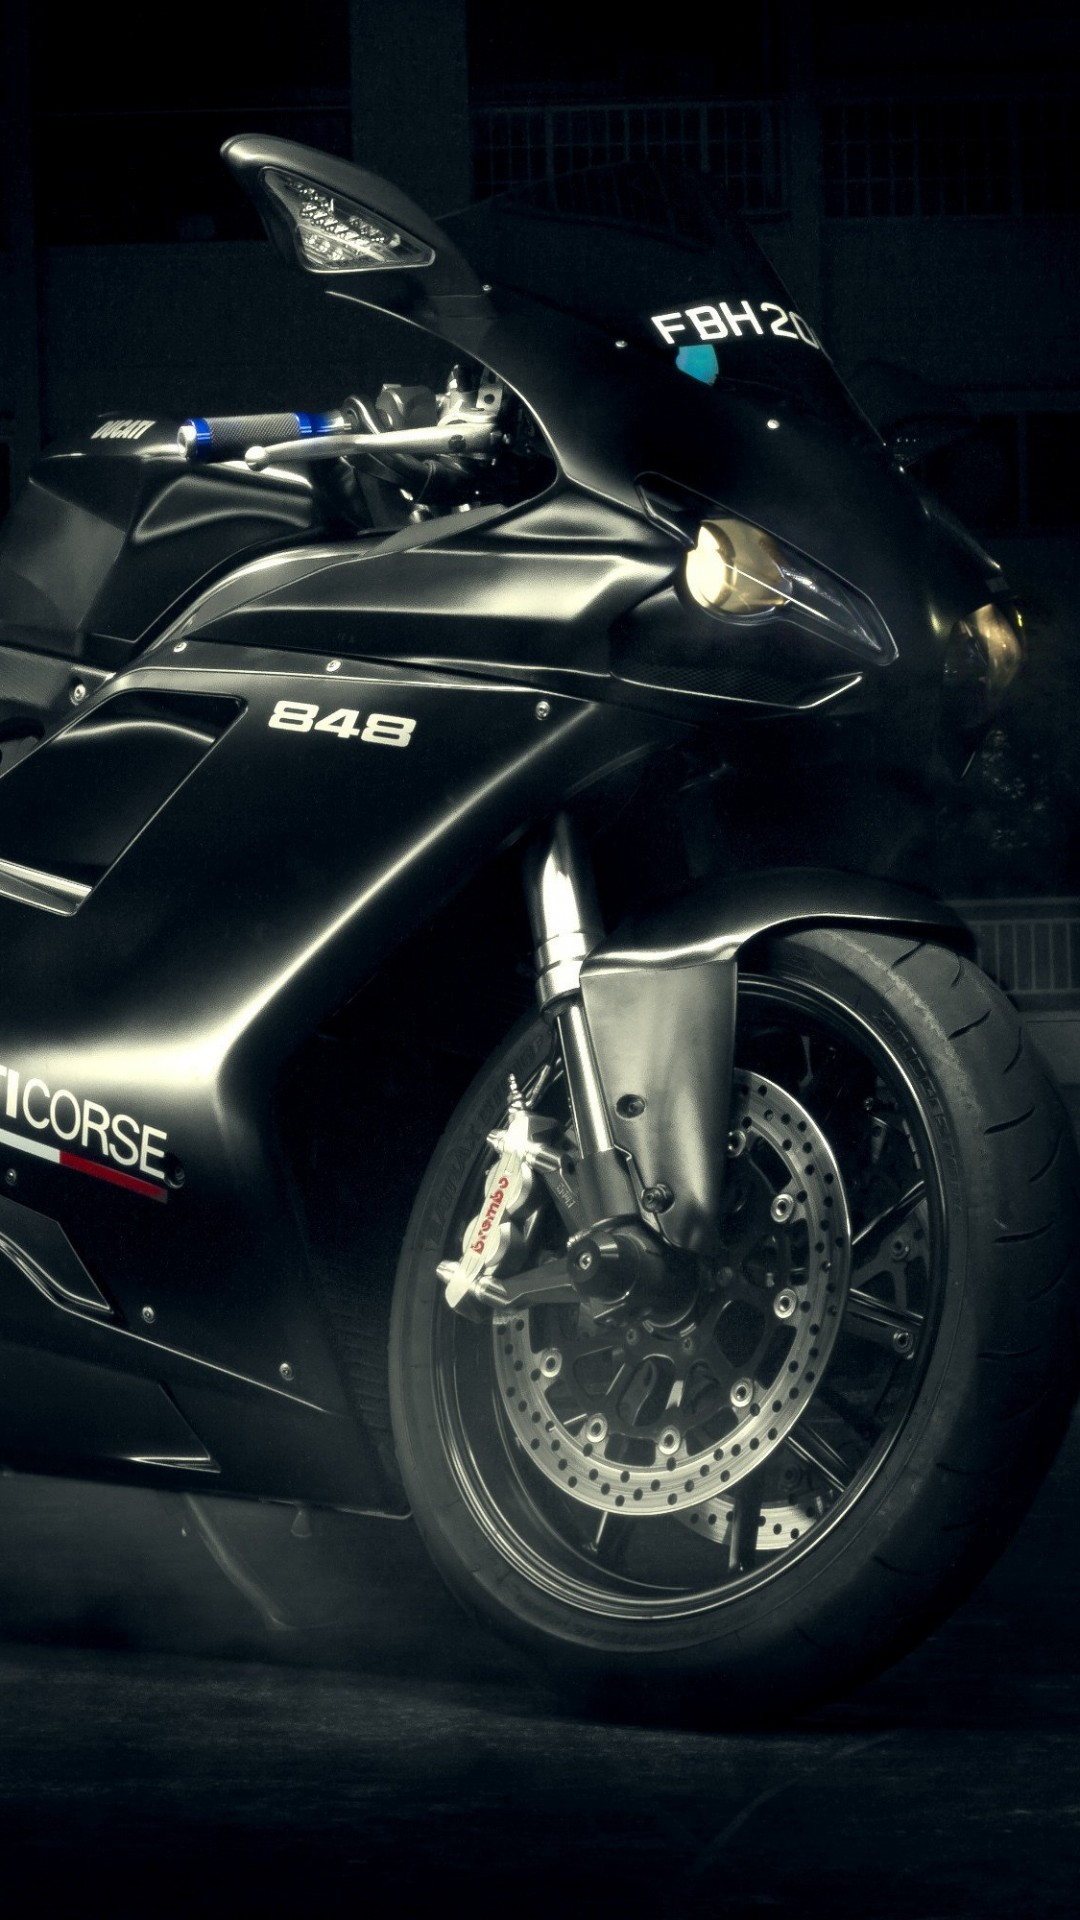 Ducati 848 Wallpaper for SAMSUNG Galaxy Note 3